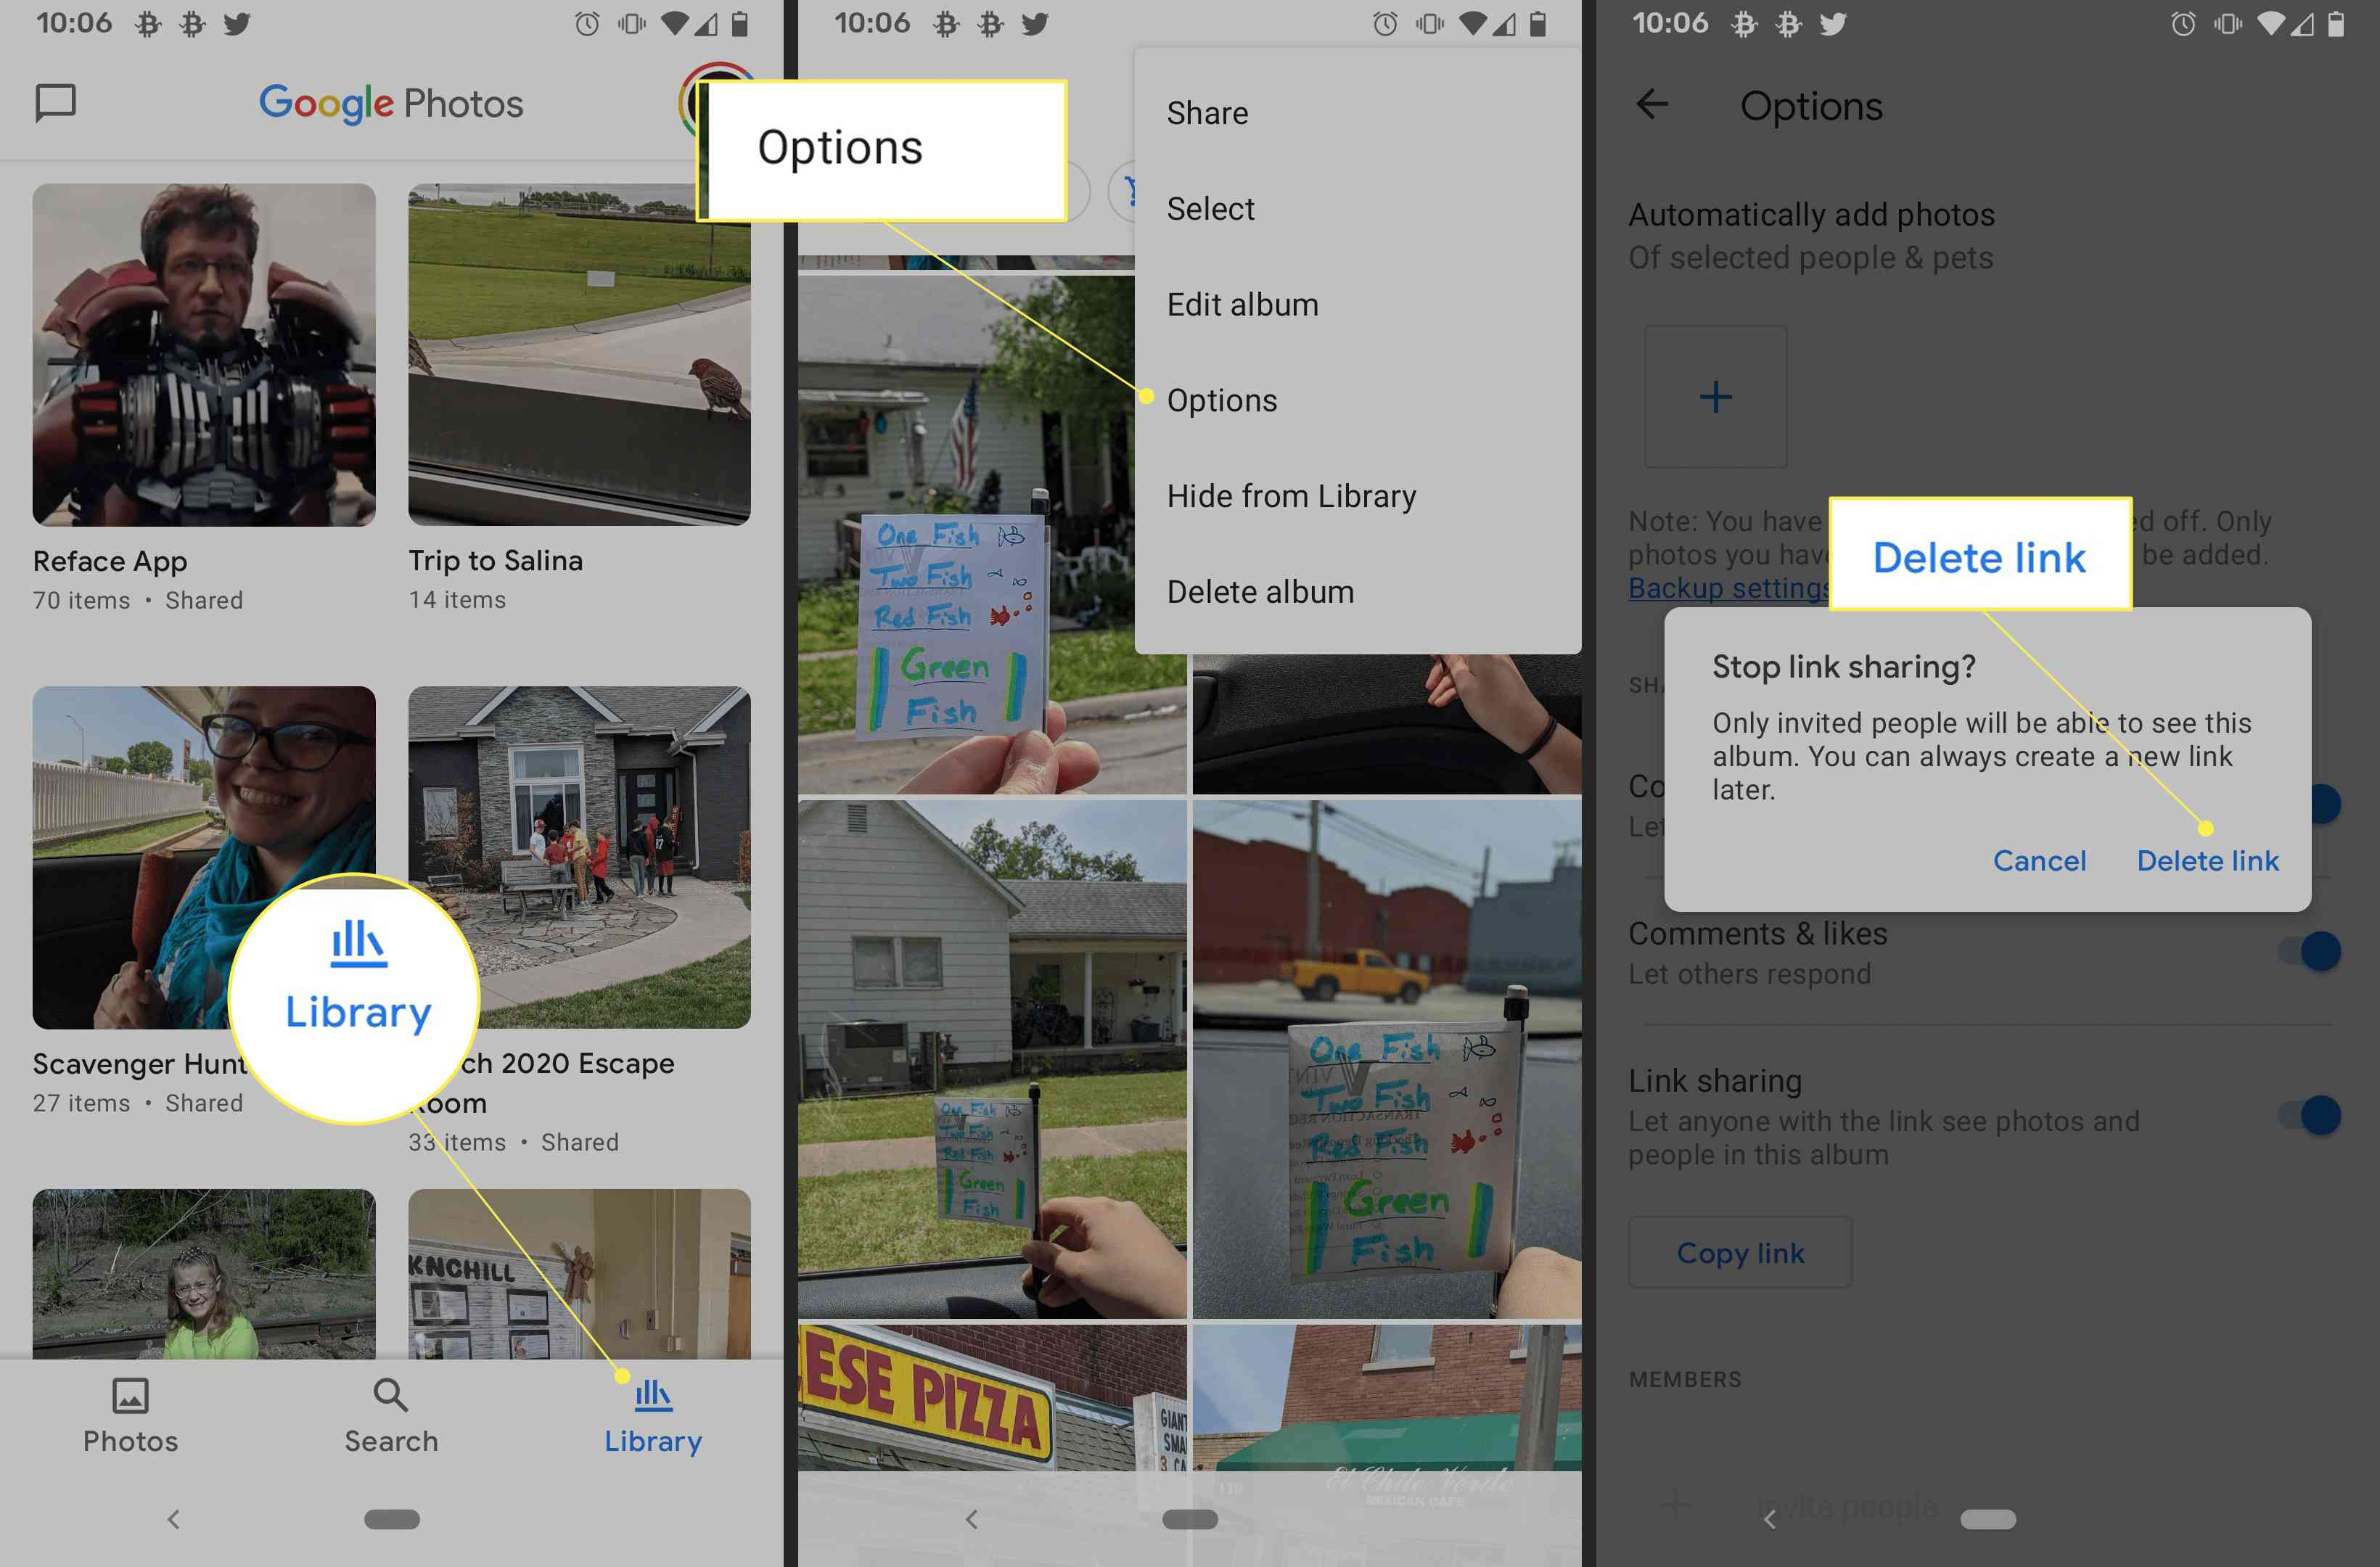 Google Photos delete link prompt for link sharing on Android, with